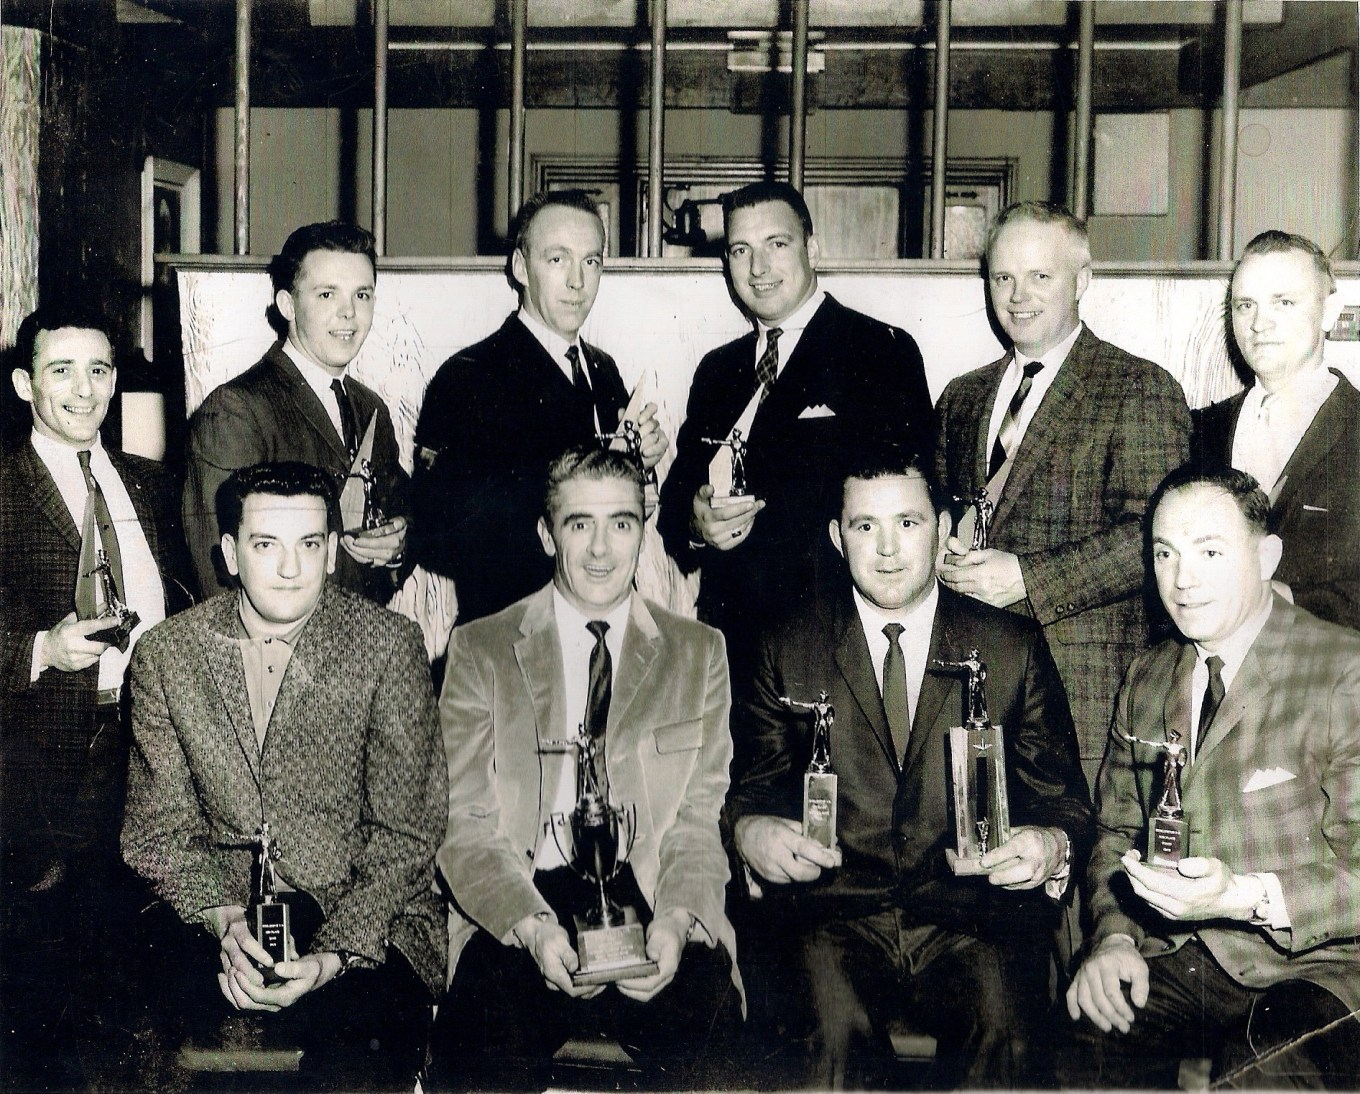 Burlington Police pistol team c. 1965, Burlington MA